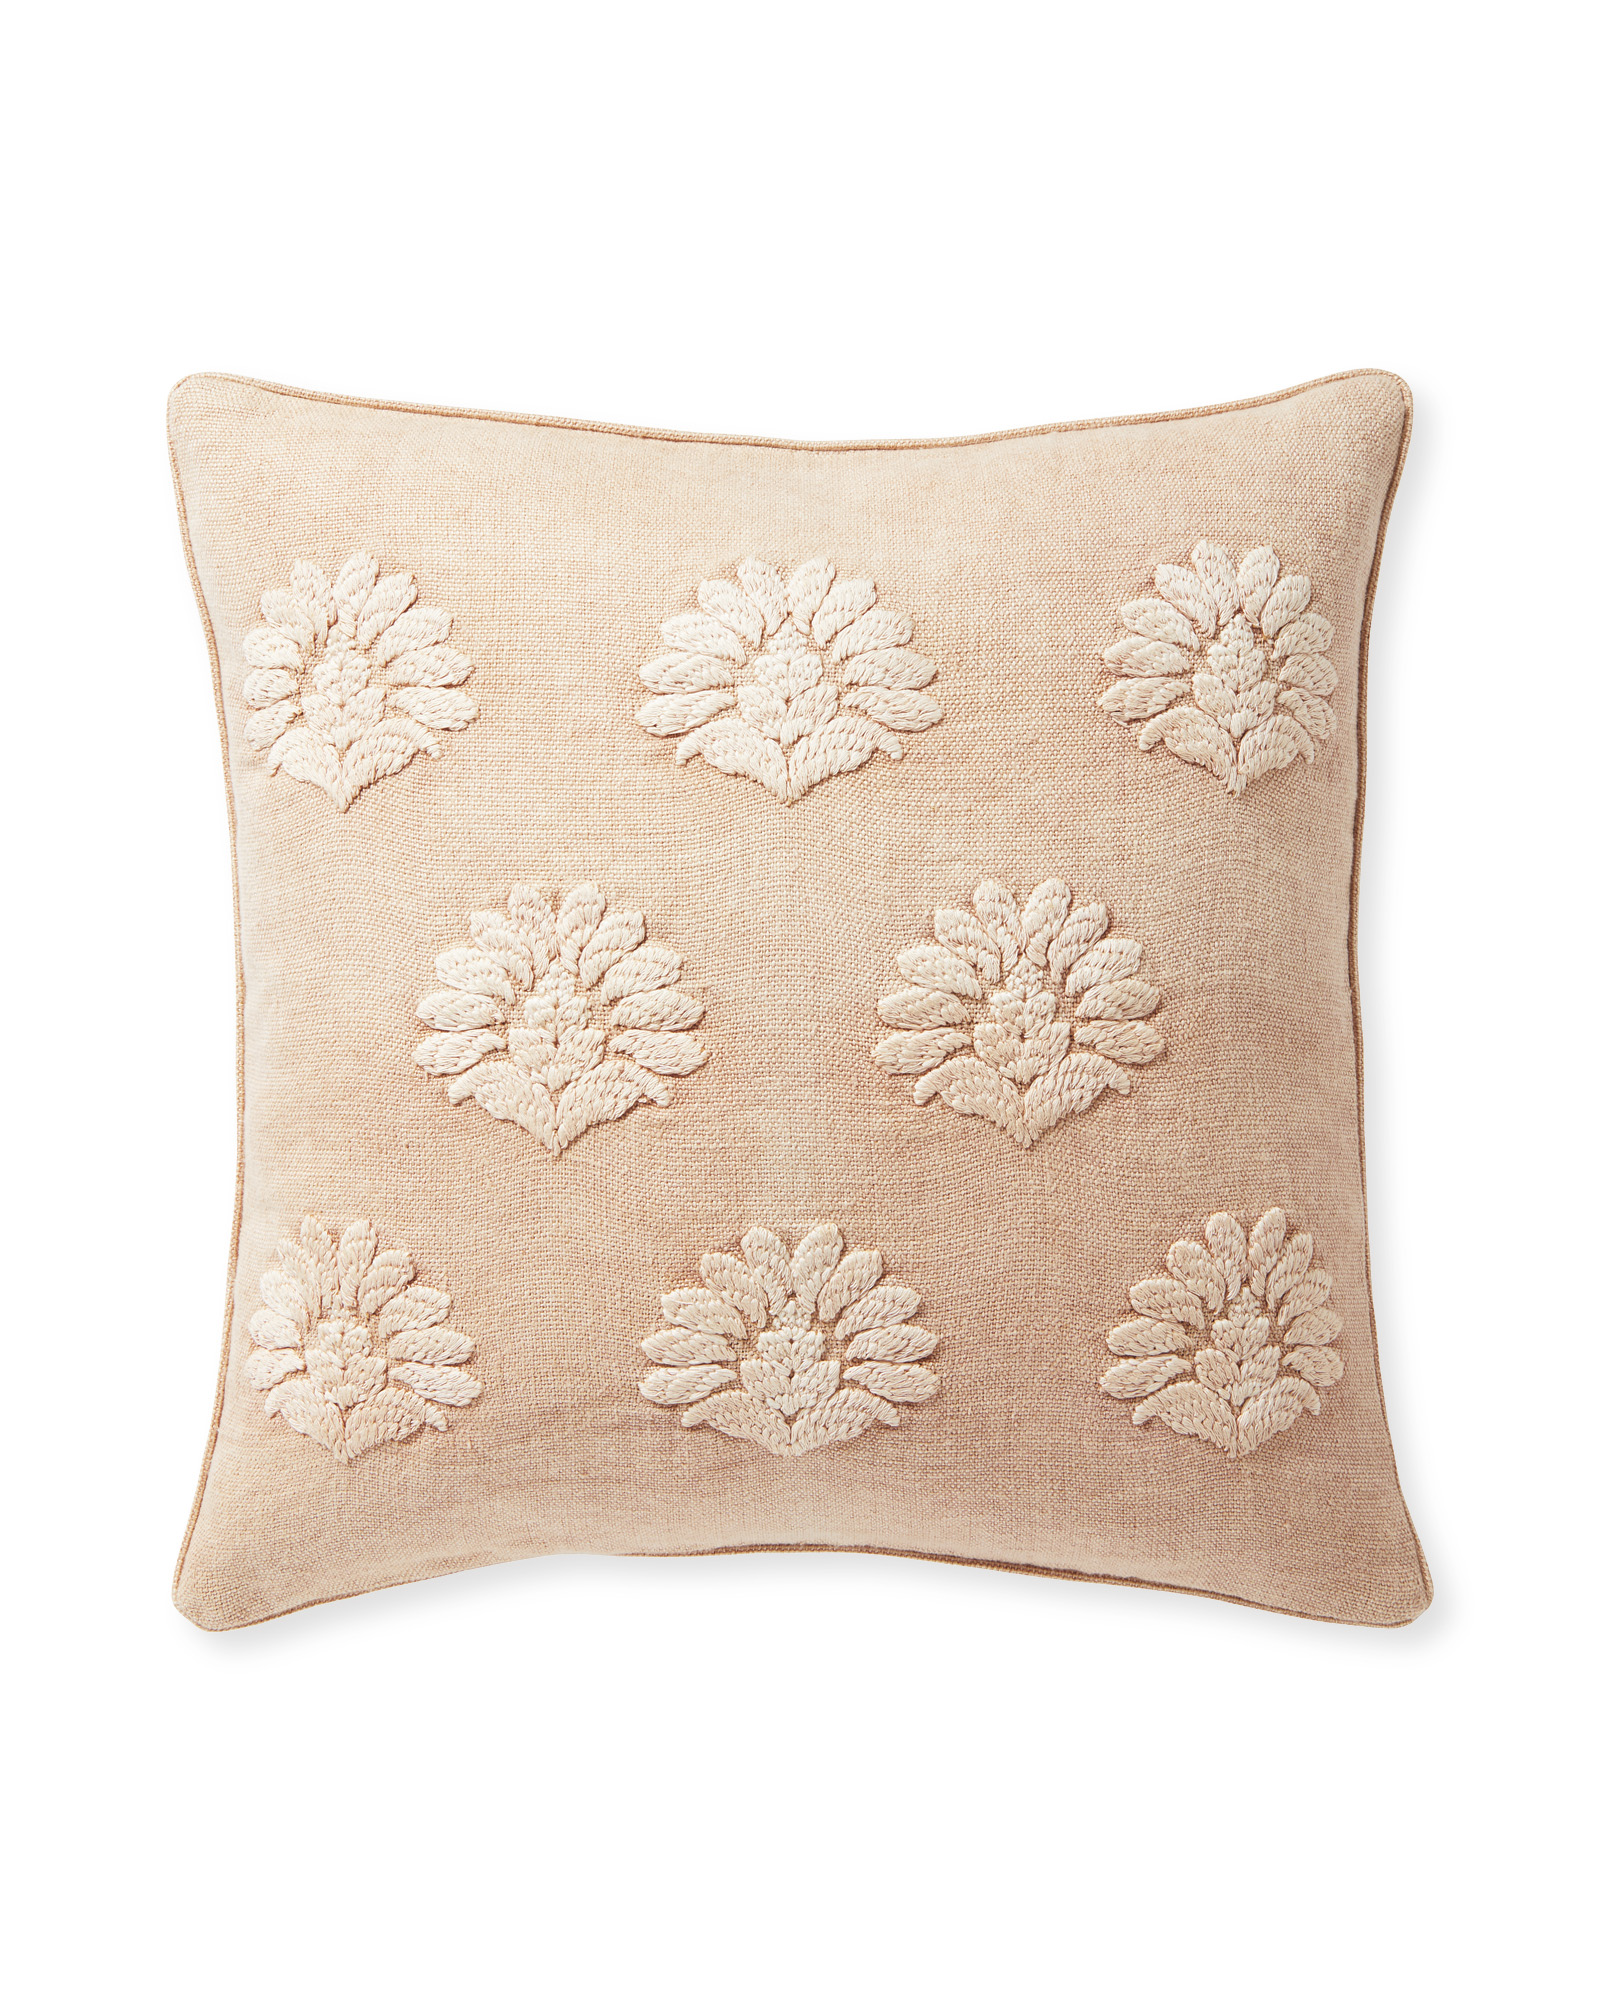 Miramonte Pillow Cover, Wild Rose